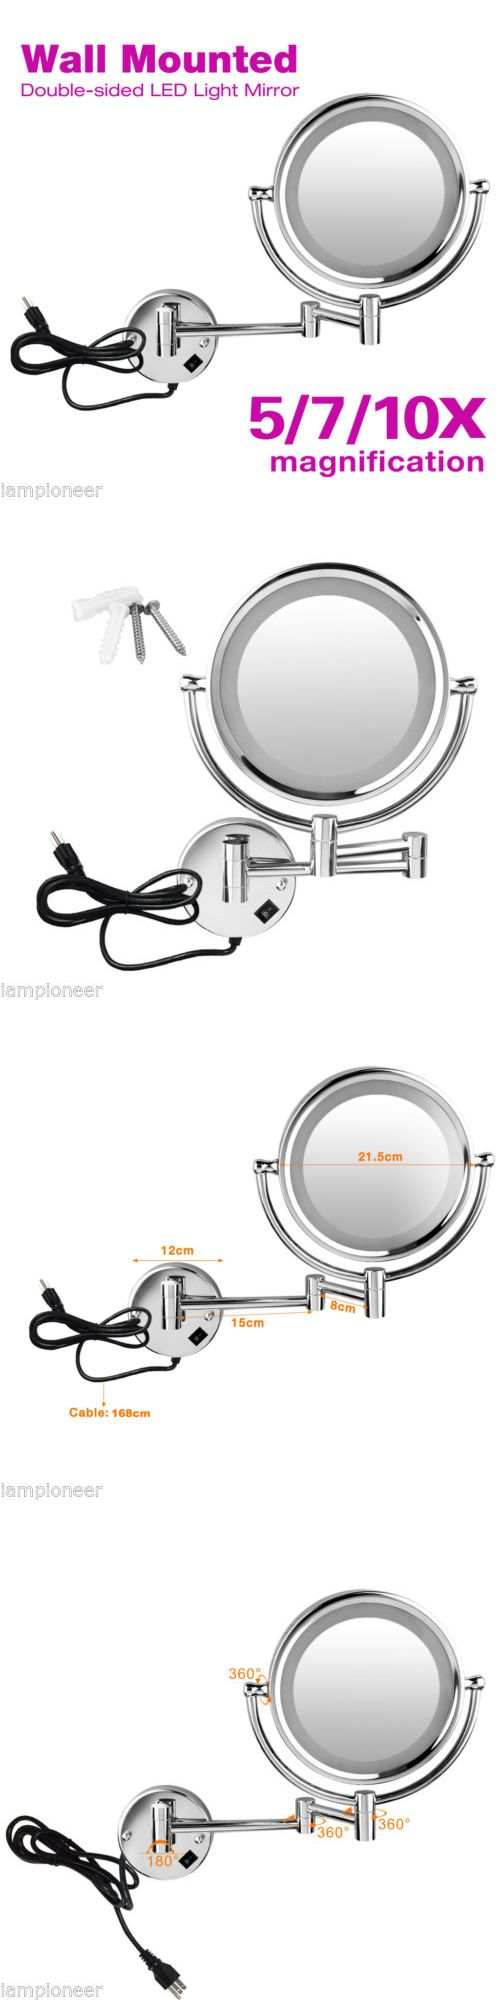 Mirrors 133693: 8.5 Inch Led Lighted Make Up Bathroom Wall Mounted Extending Double Sided Mirror -> BUY IT NOW ONLY: $59.99 on eBay!